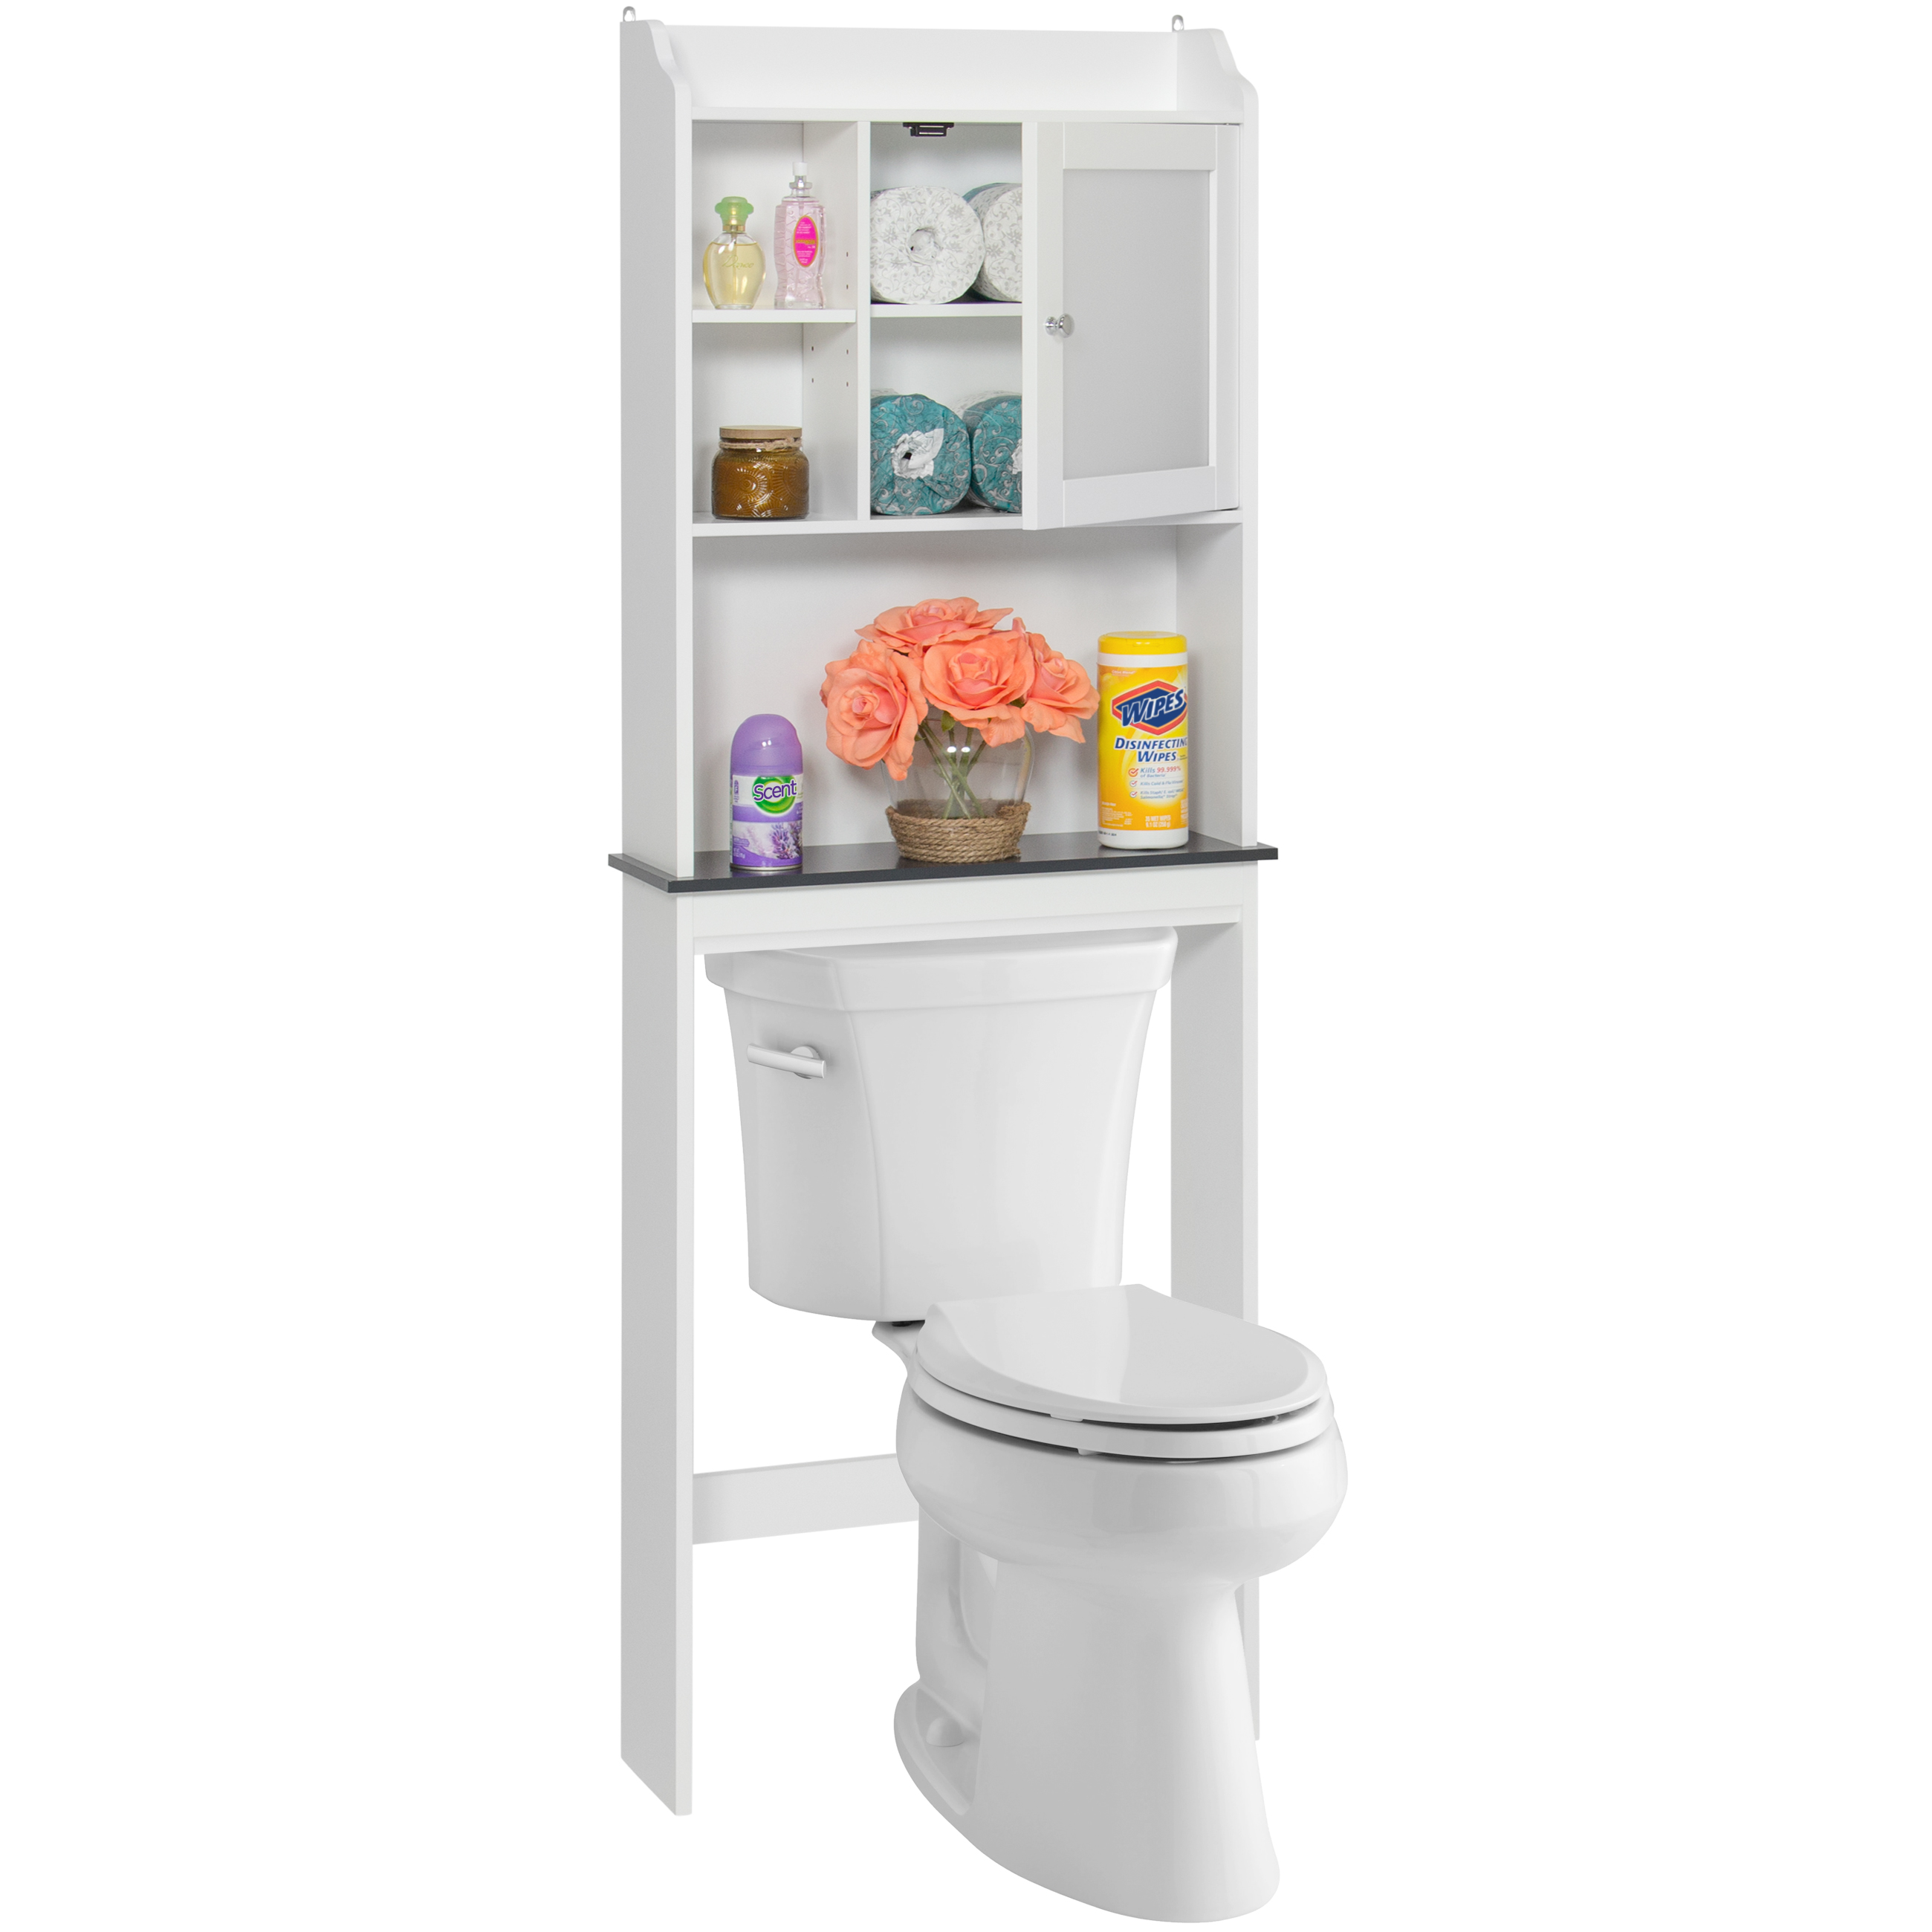 bathroom space saver cabinet best choice products bathroom the toilet space saver 16664